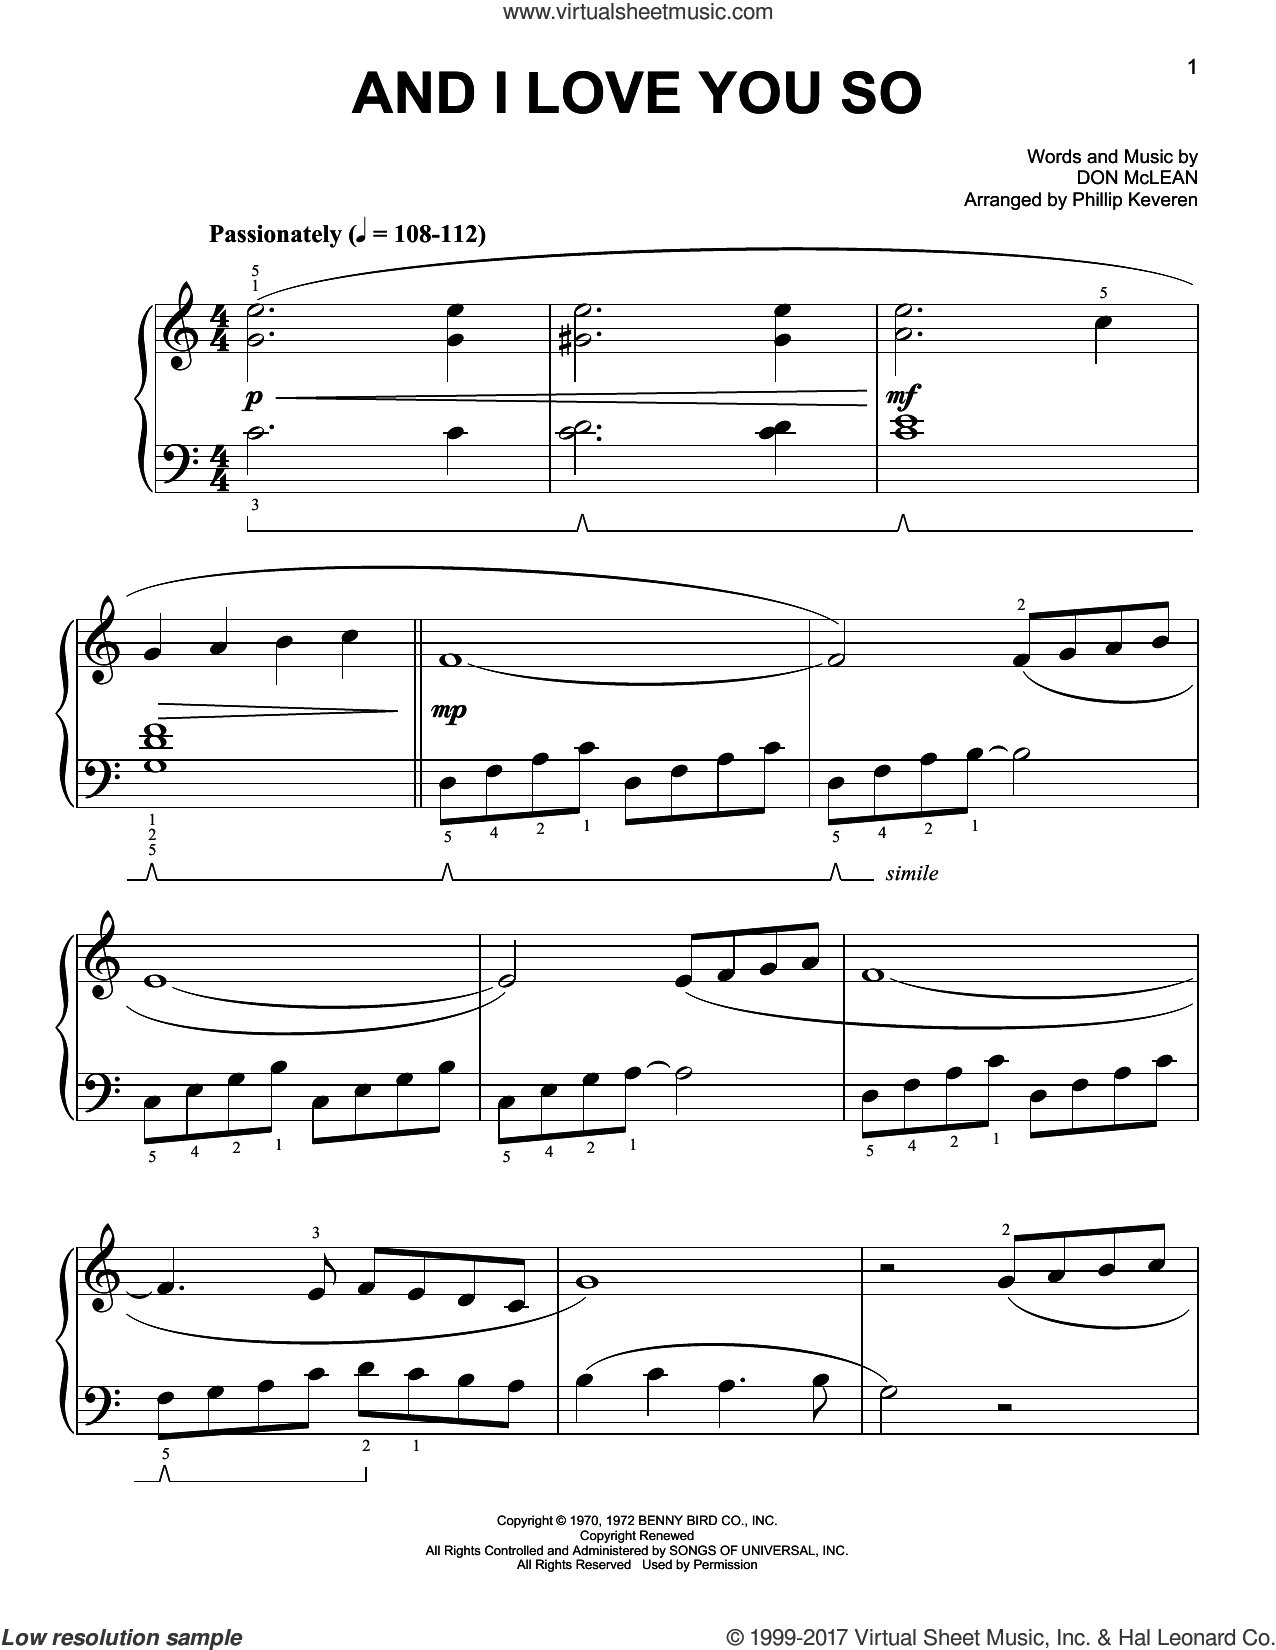 And I Love You So sheet music for piano solo by Don McLean, Phillip Keveren, Bobby Goldsboro and Perry Como, easy skill level